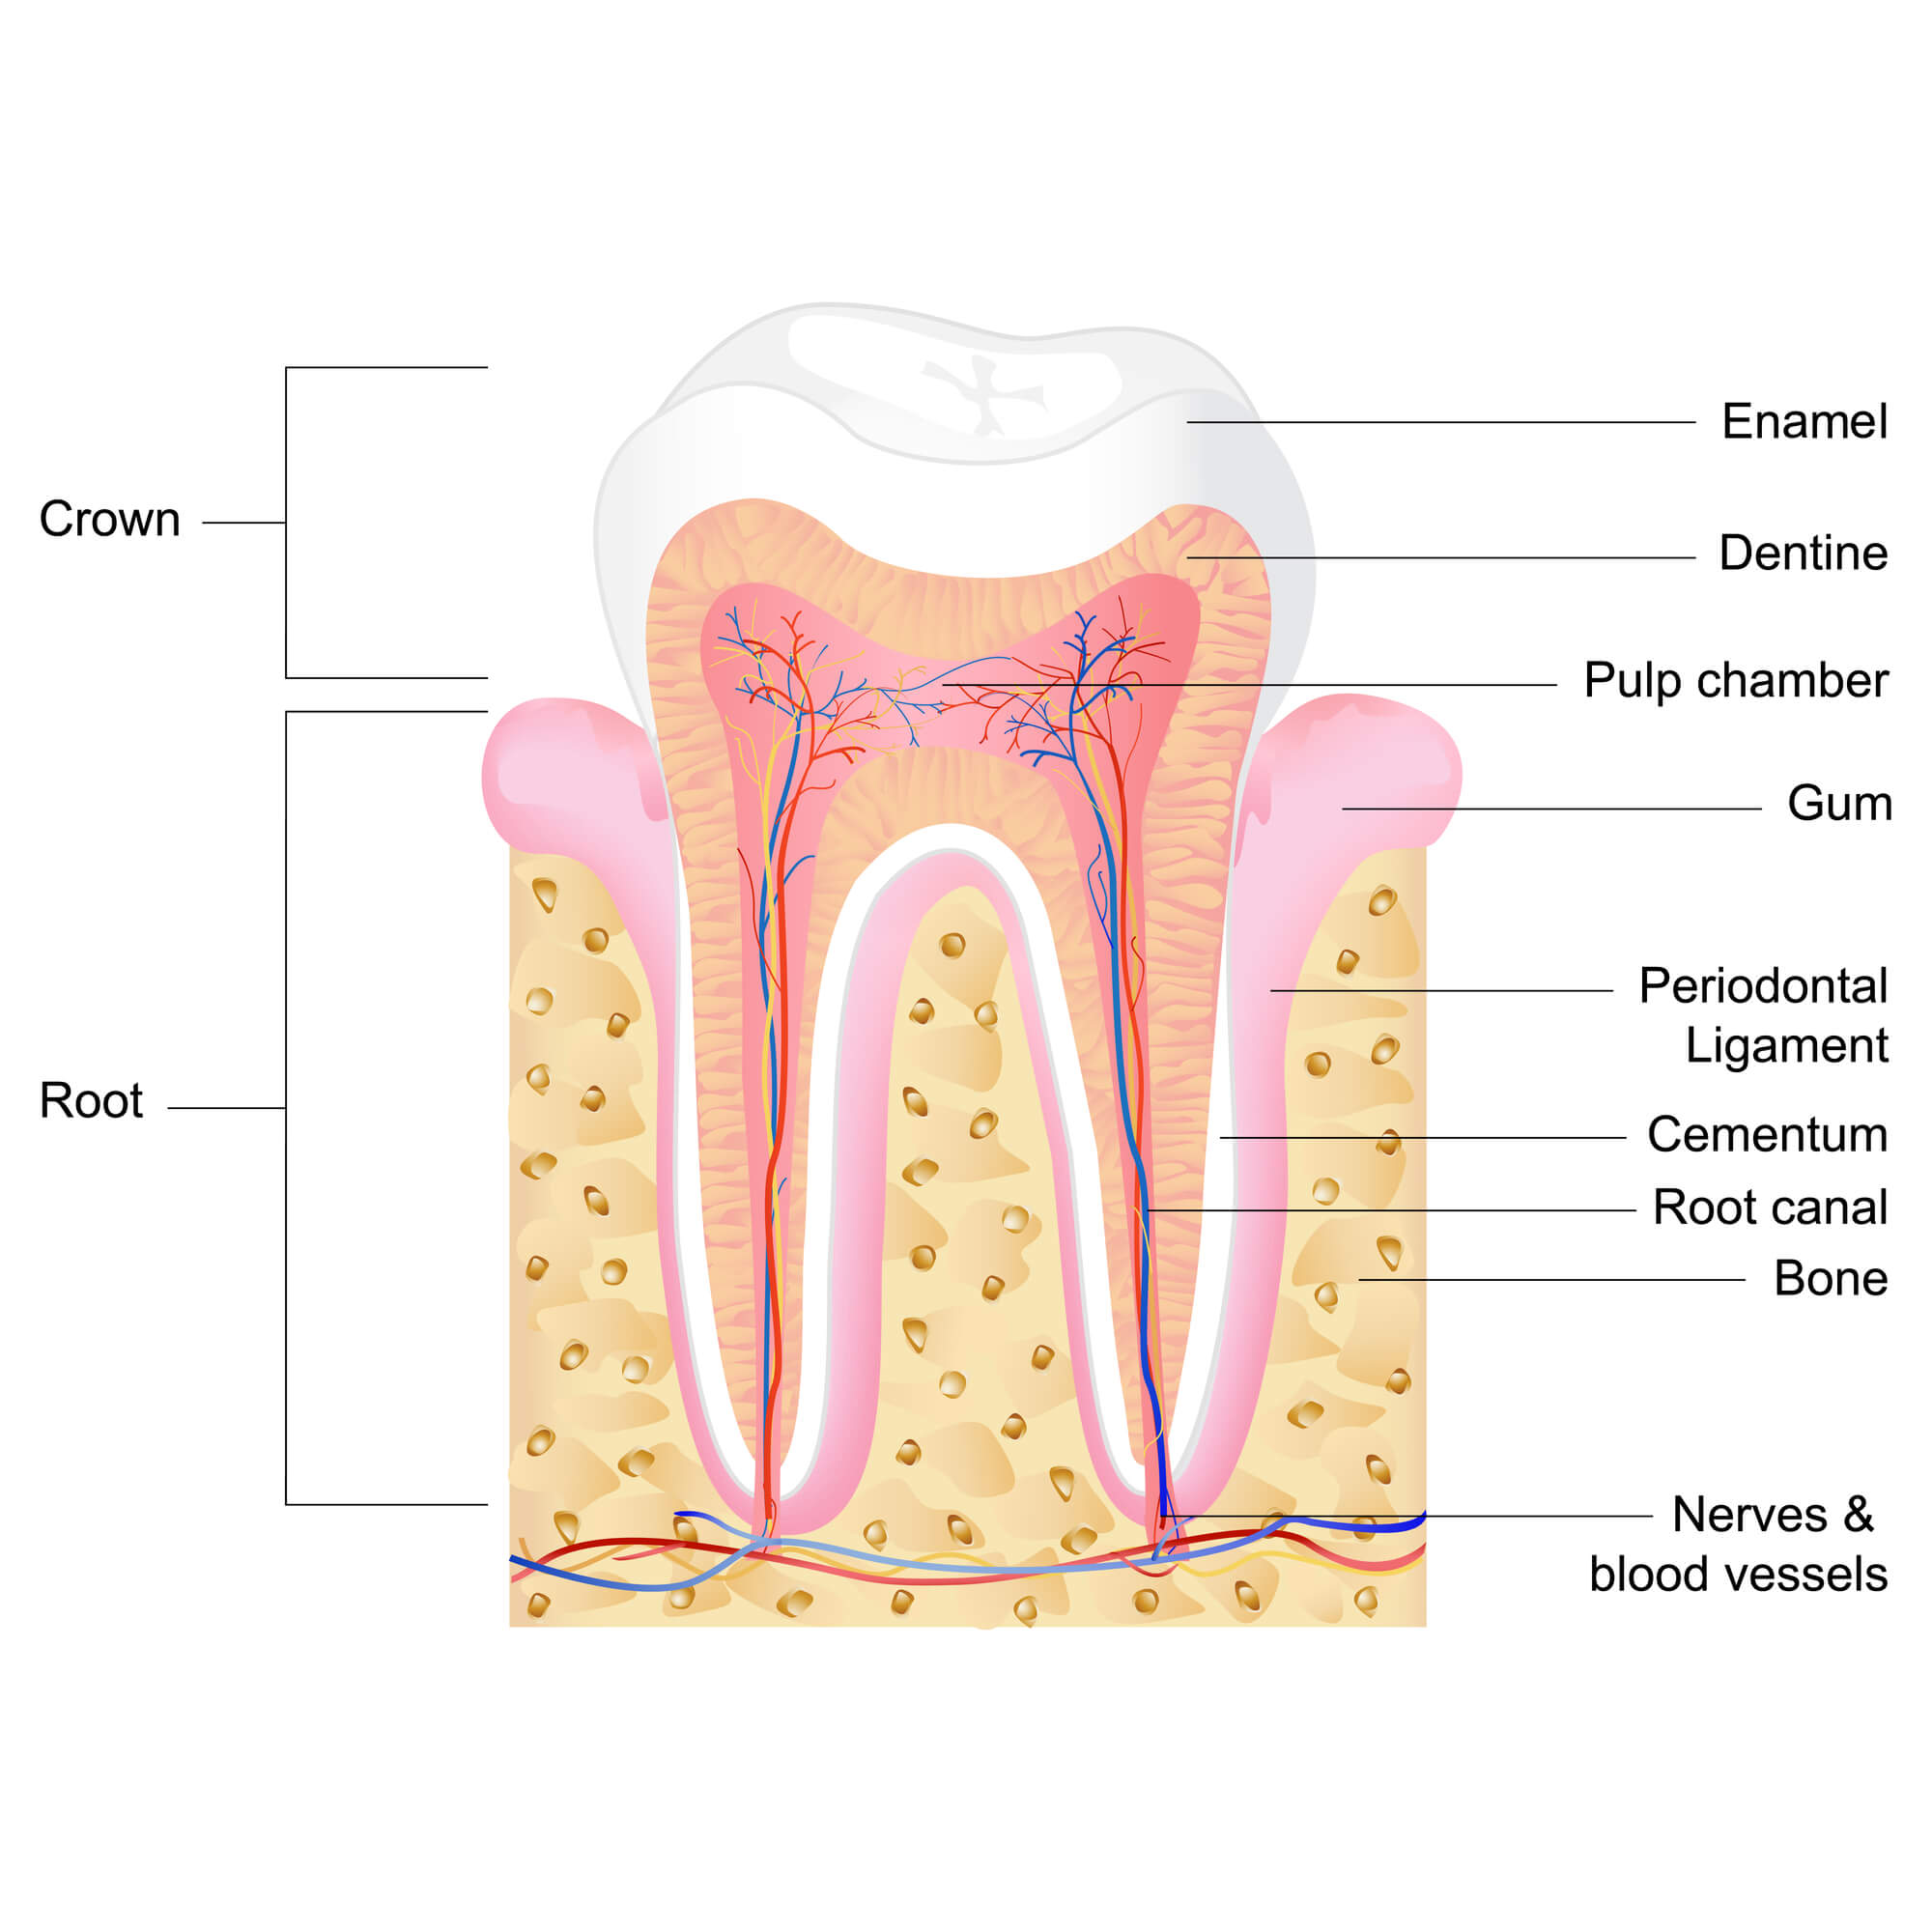 Where to get the best endodontic microsurgery mechanicsville?